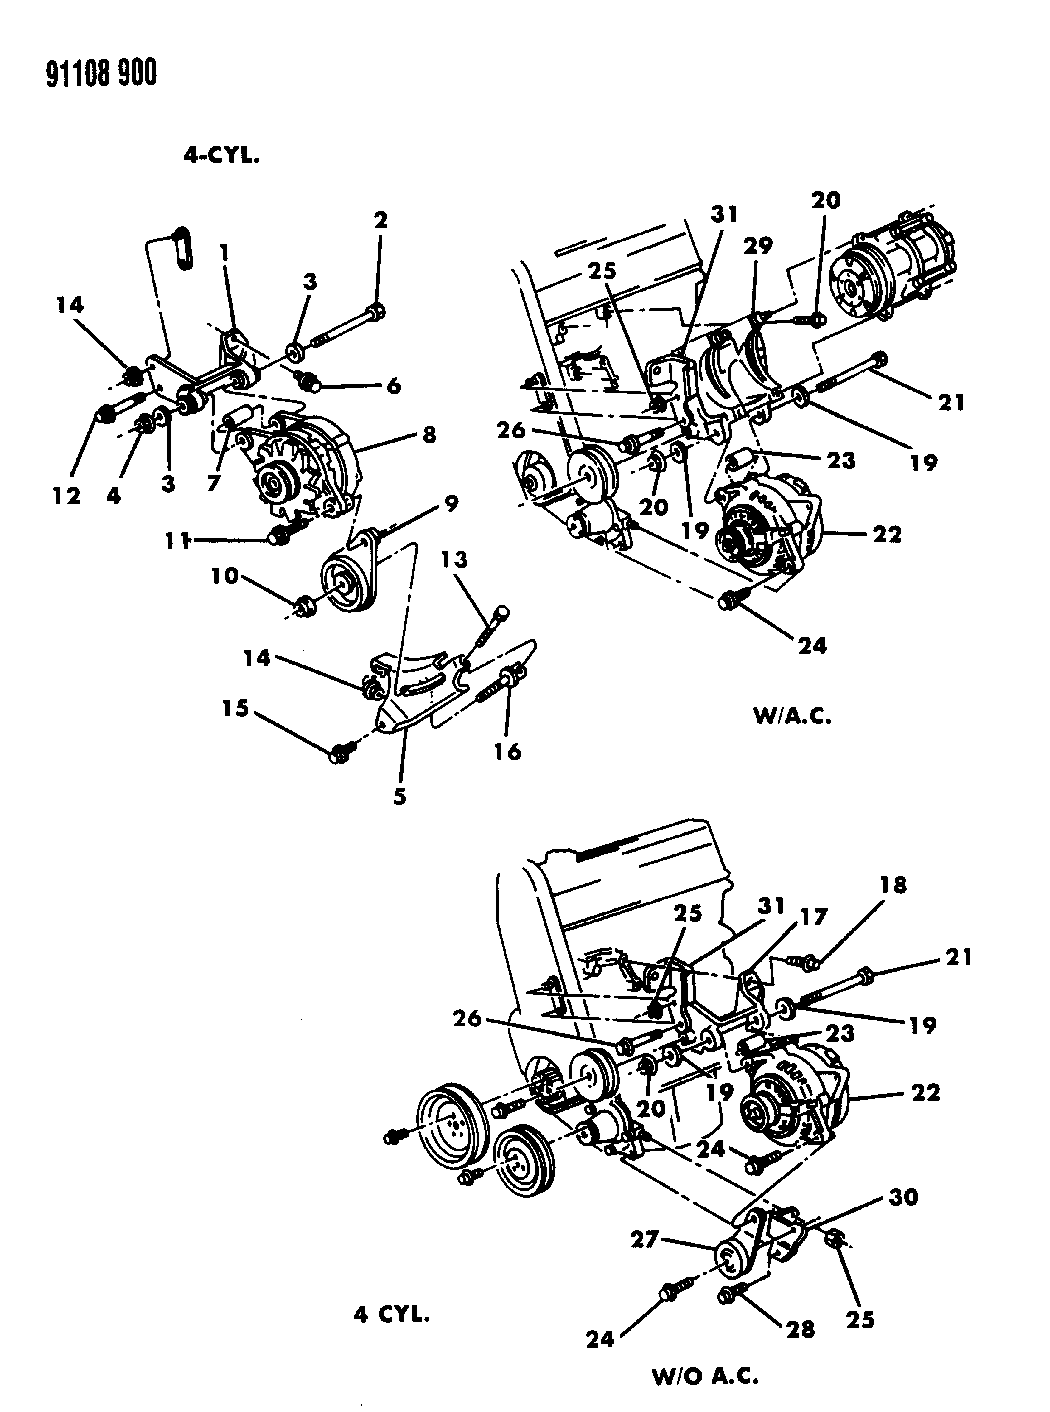 1991 dodge spirit engine diagram